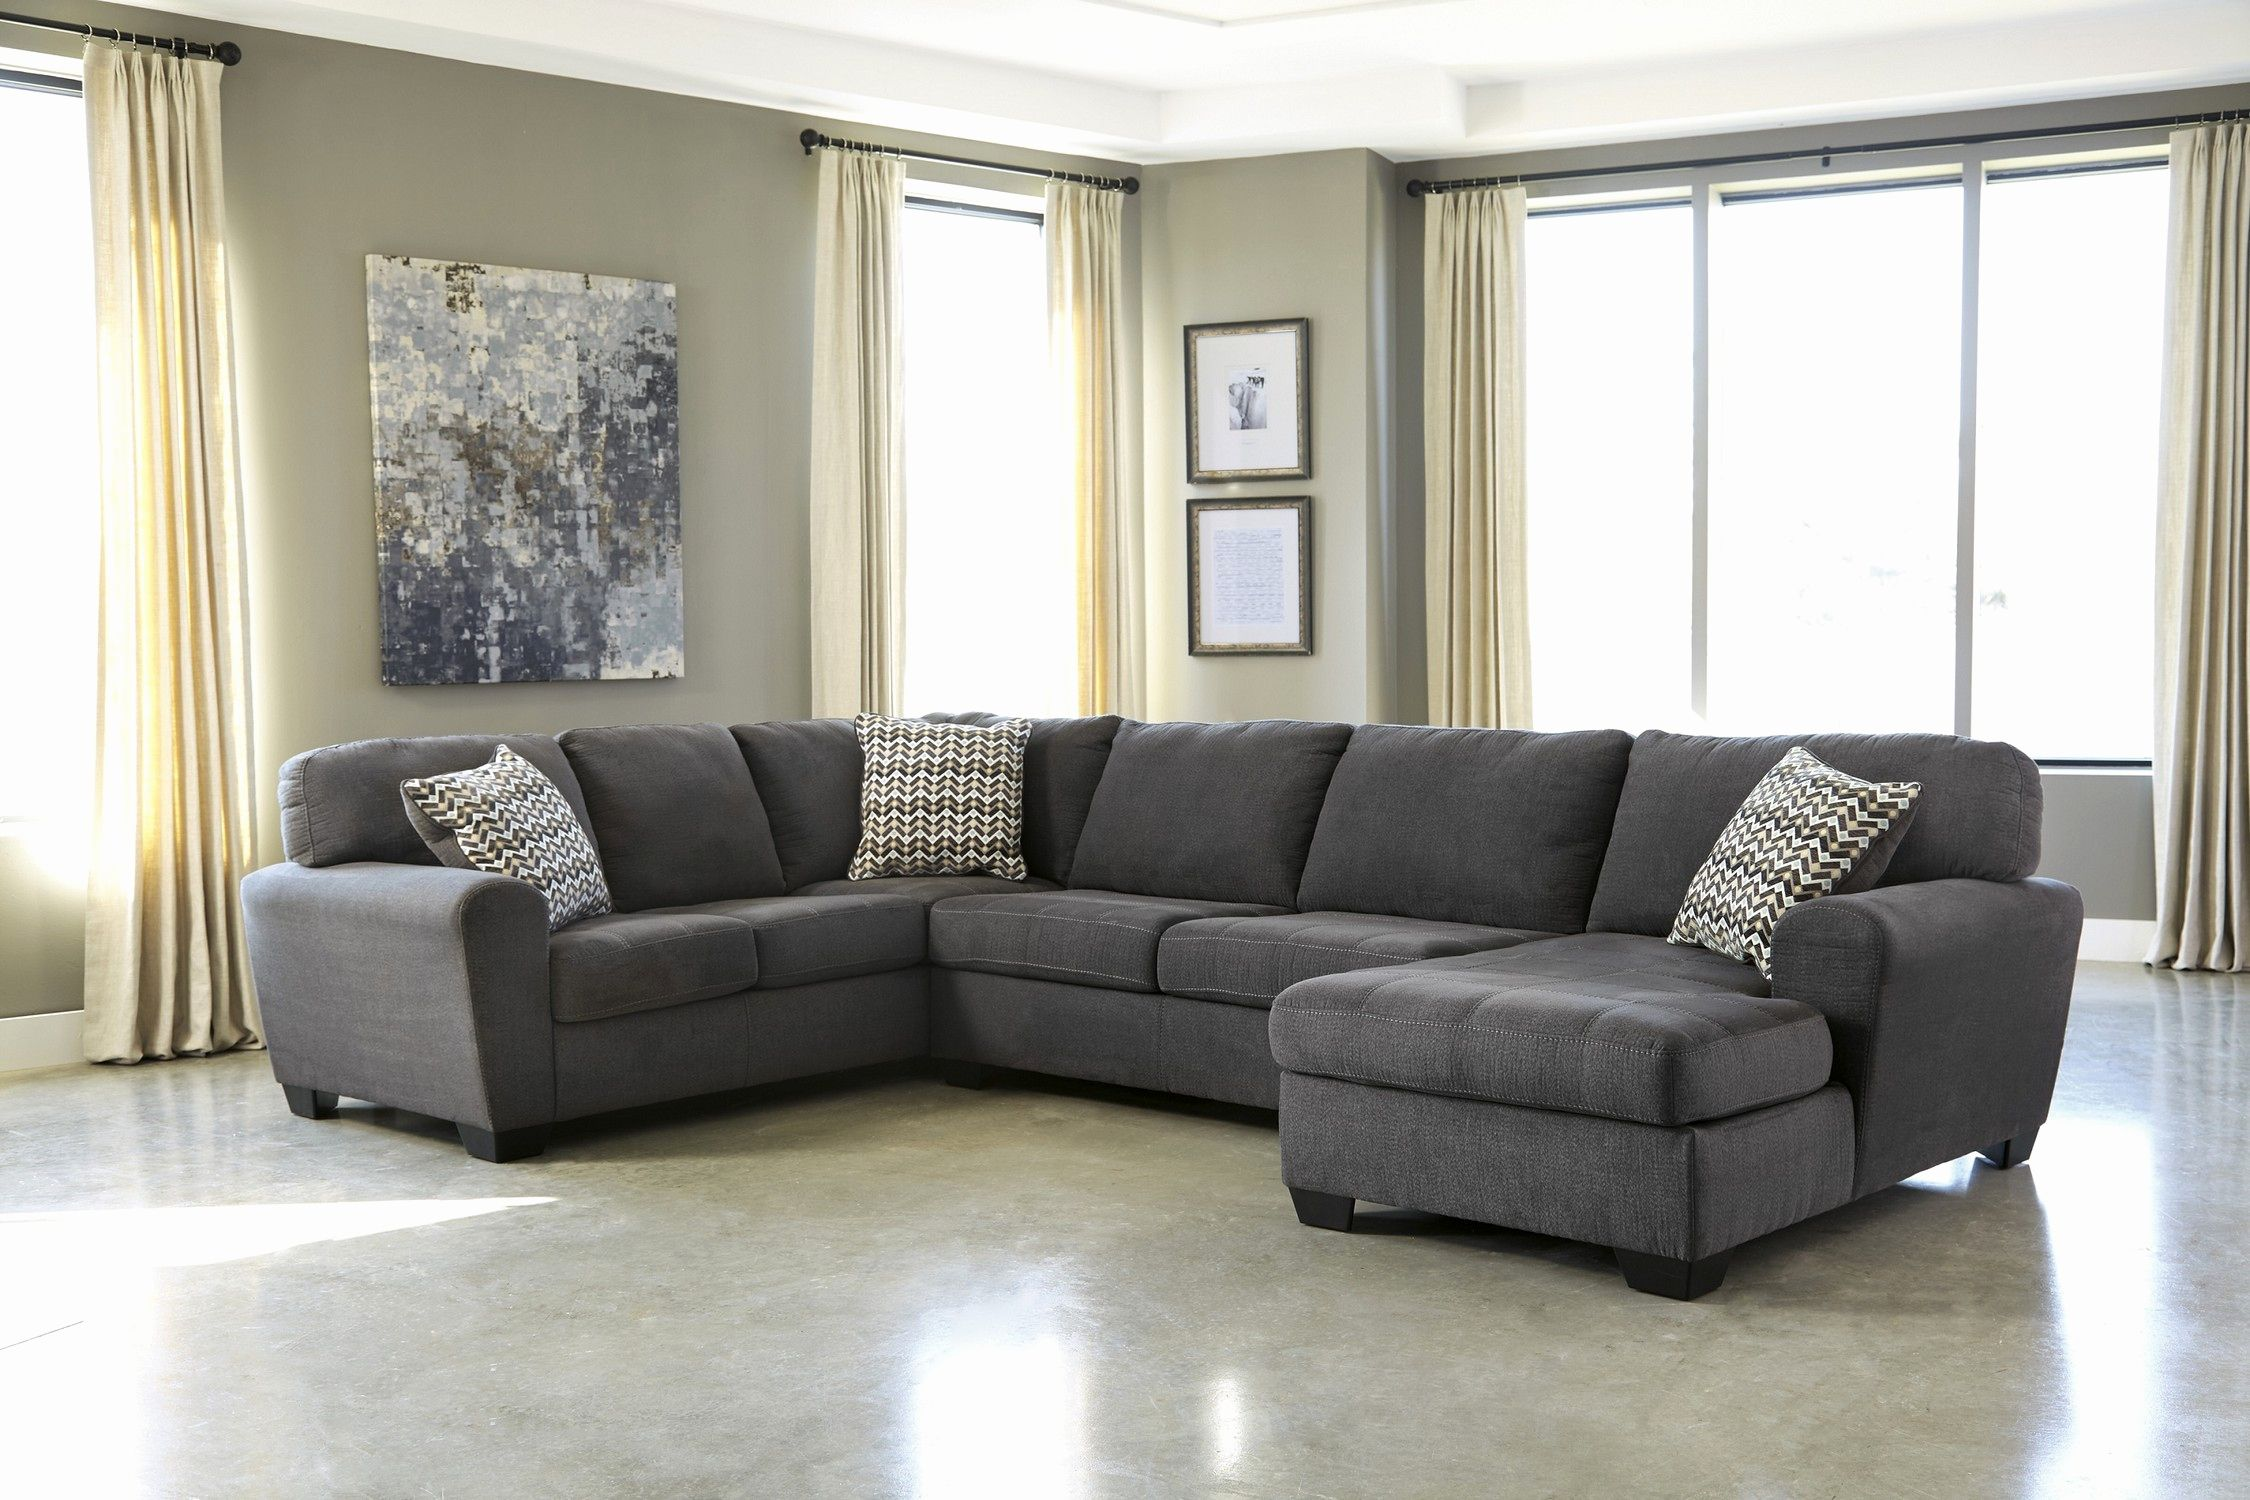 Unique Charcoal Gray Sectional Sofa With Chaise Lounge Pictures